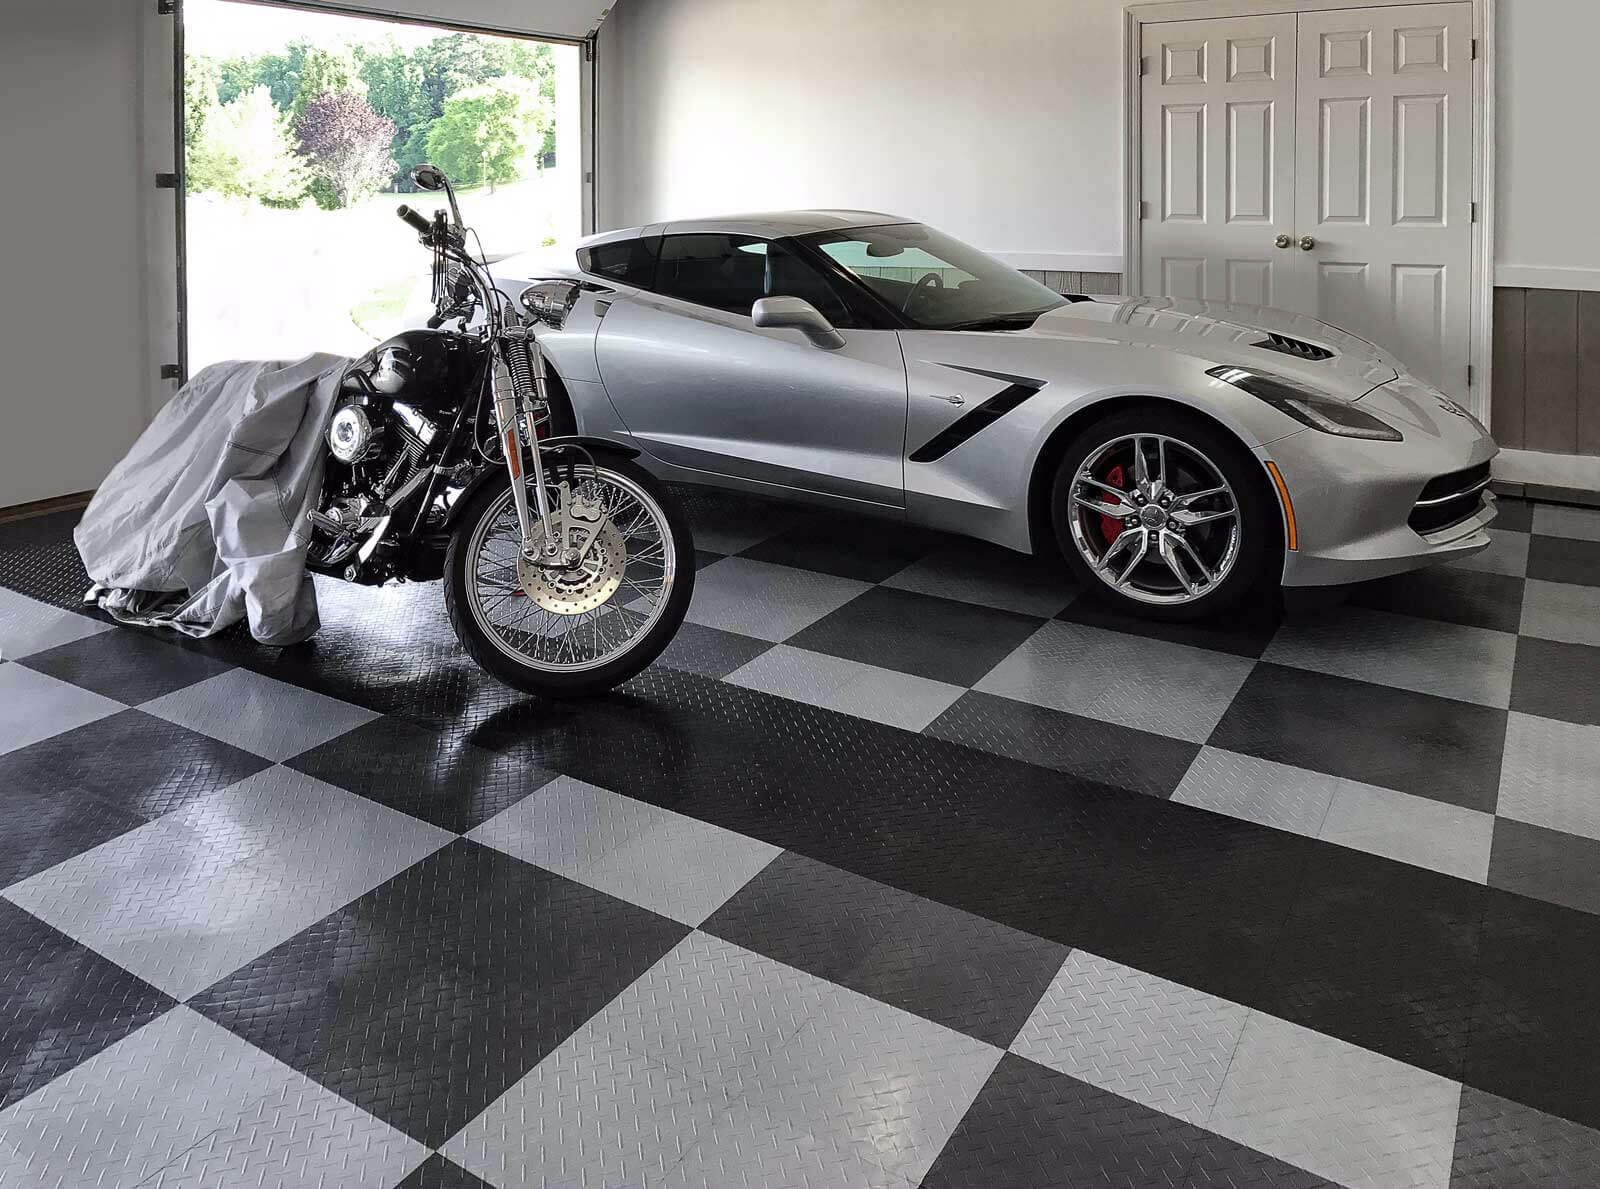 Home garage with a Corvette and motorcycle parked on RaceDeck Diamond.